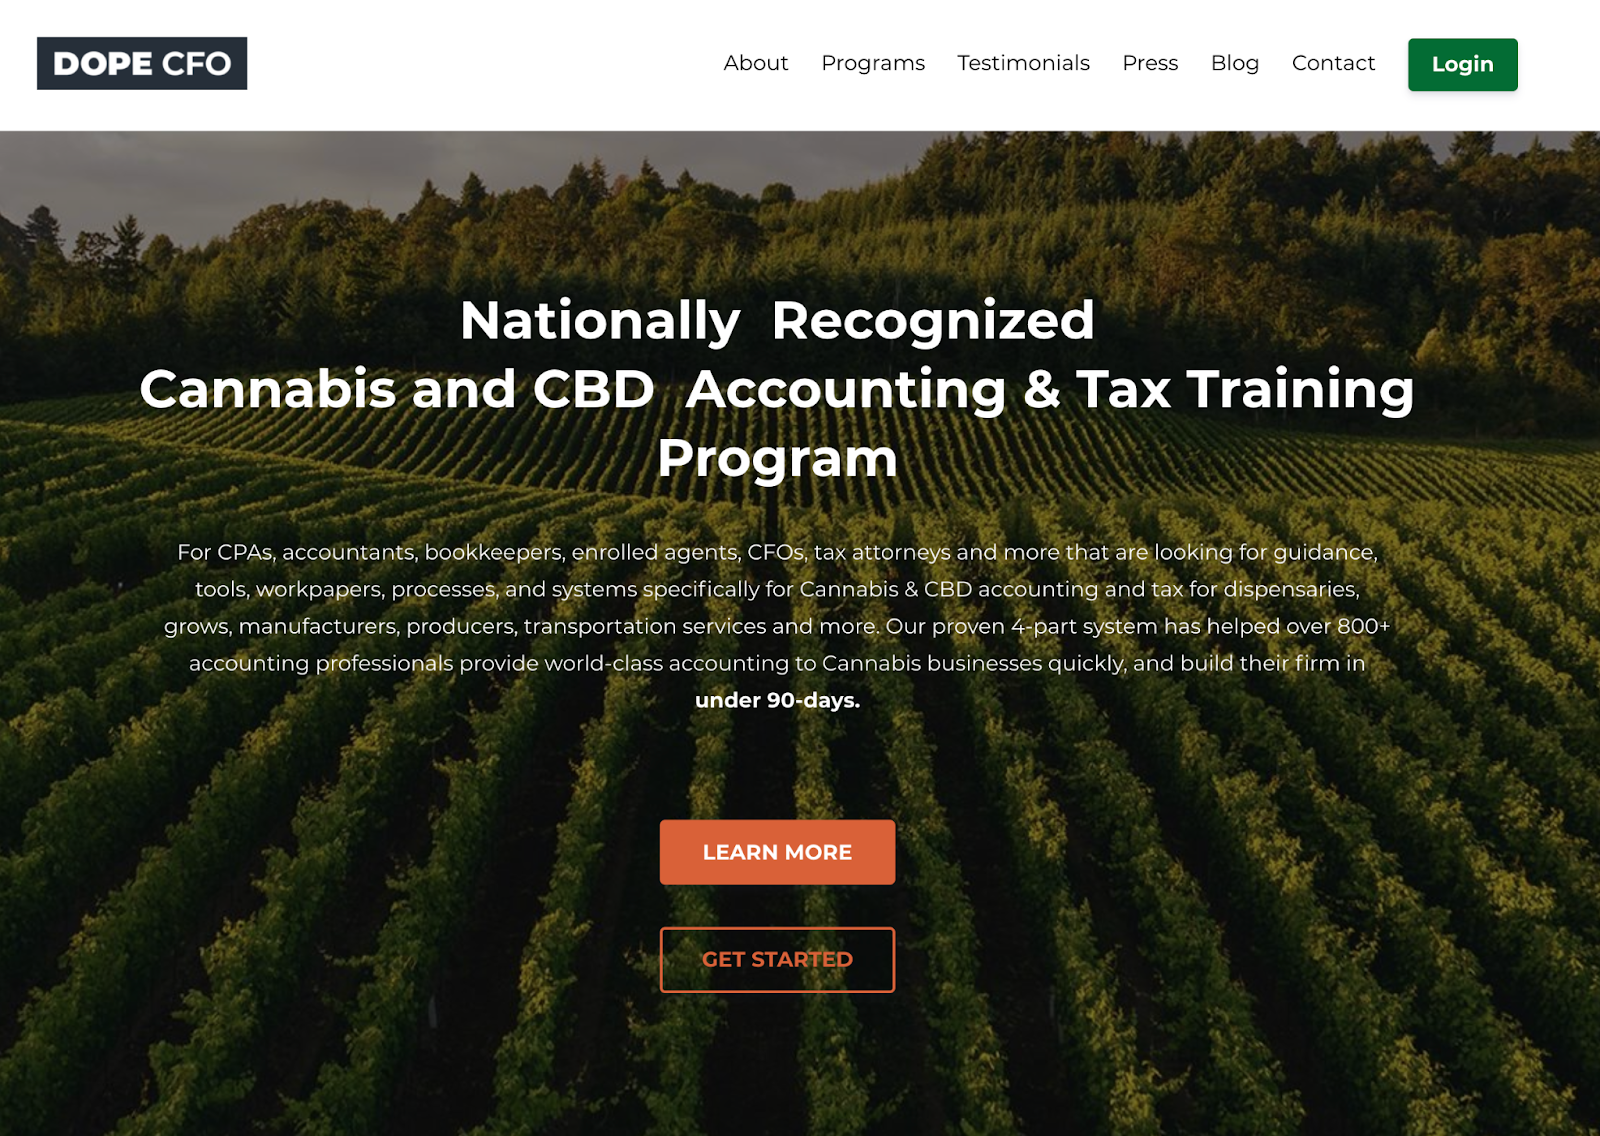 Screenshot of the Dope CFO website showcasing their nationally recognized cannabis and CBS accounting and tax training program